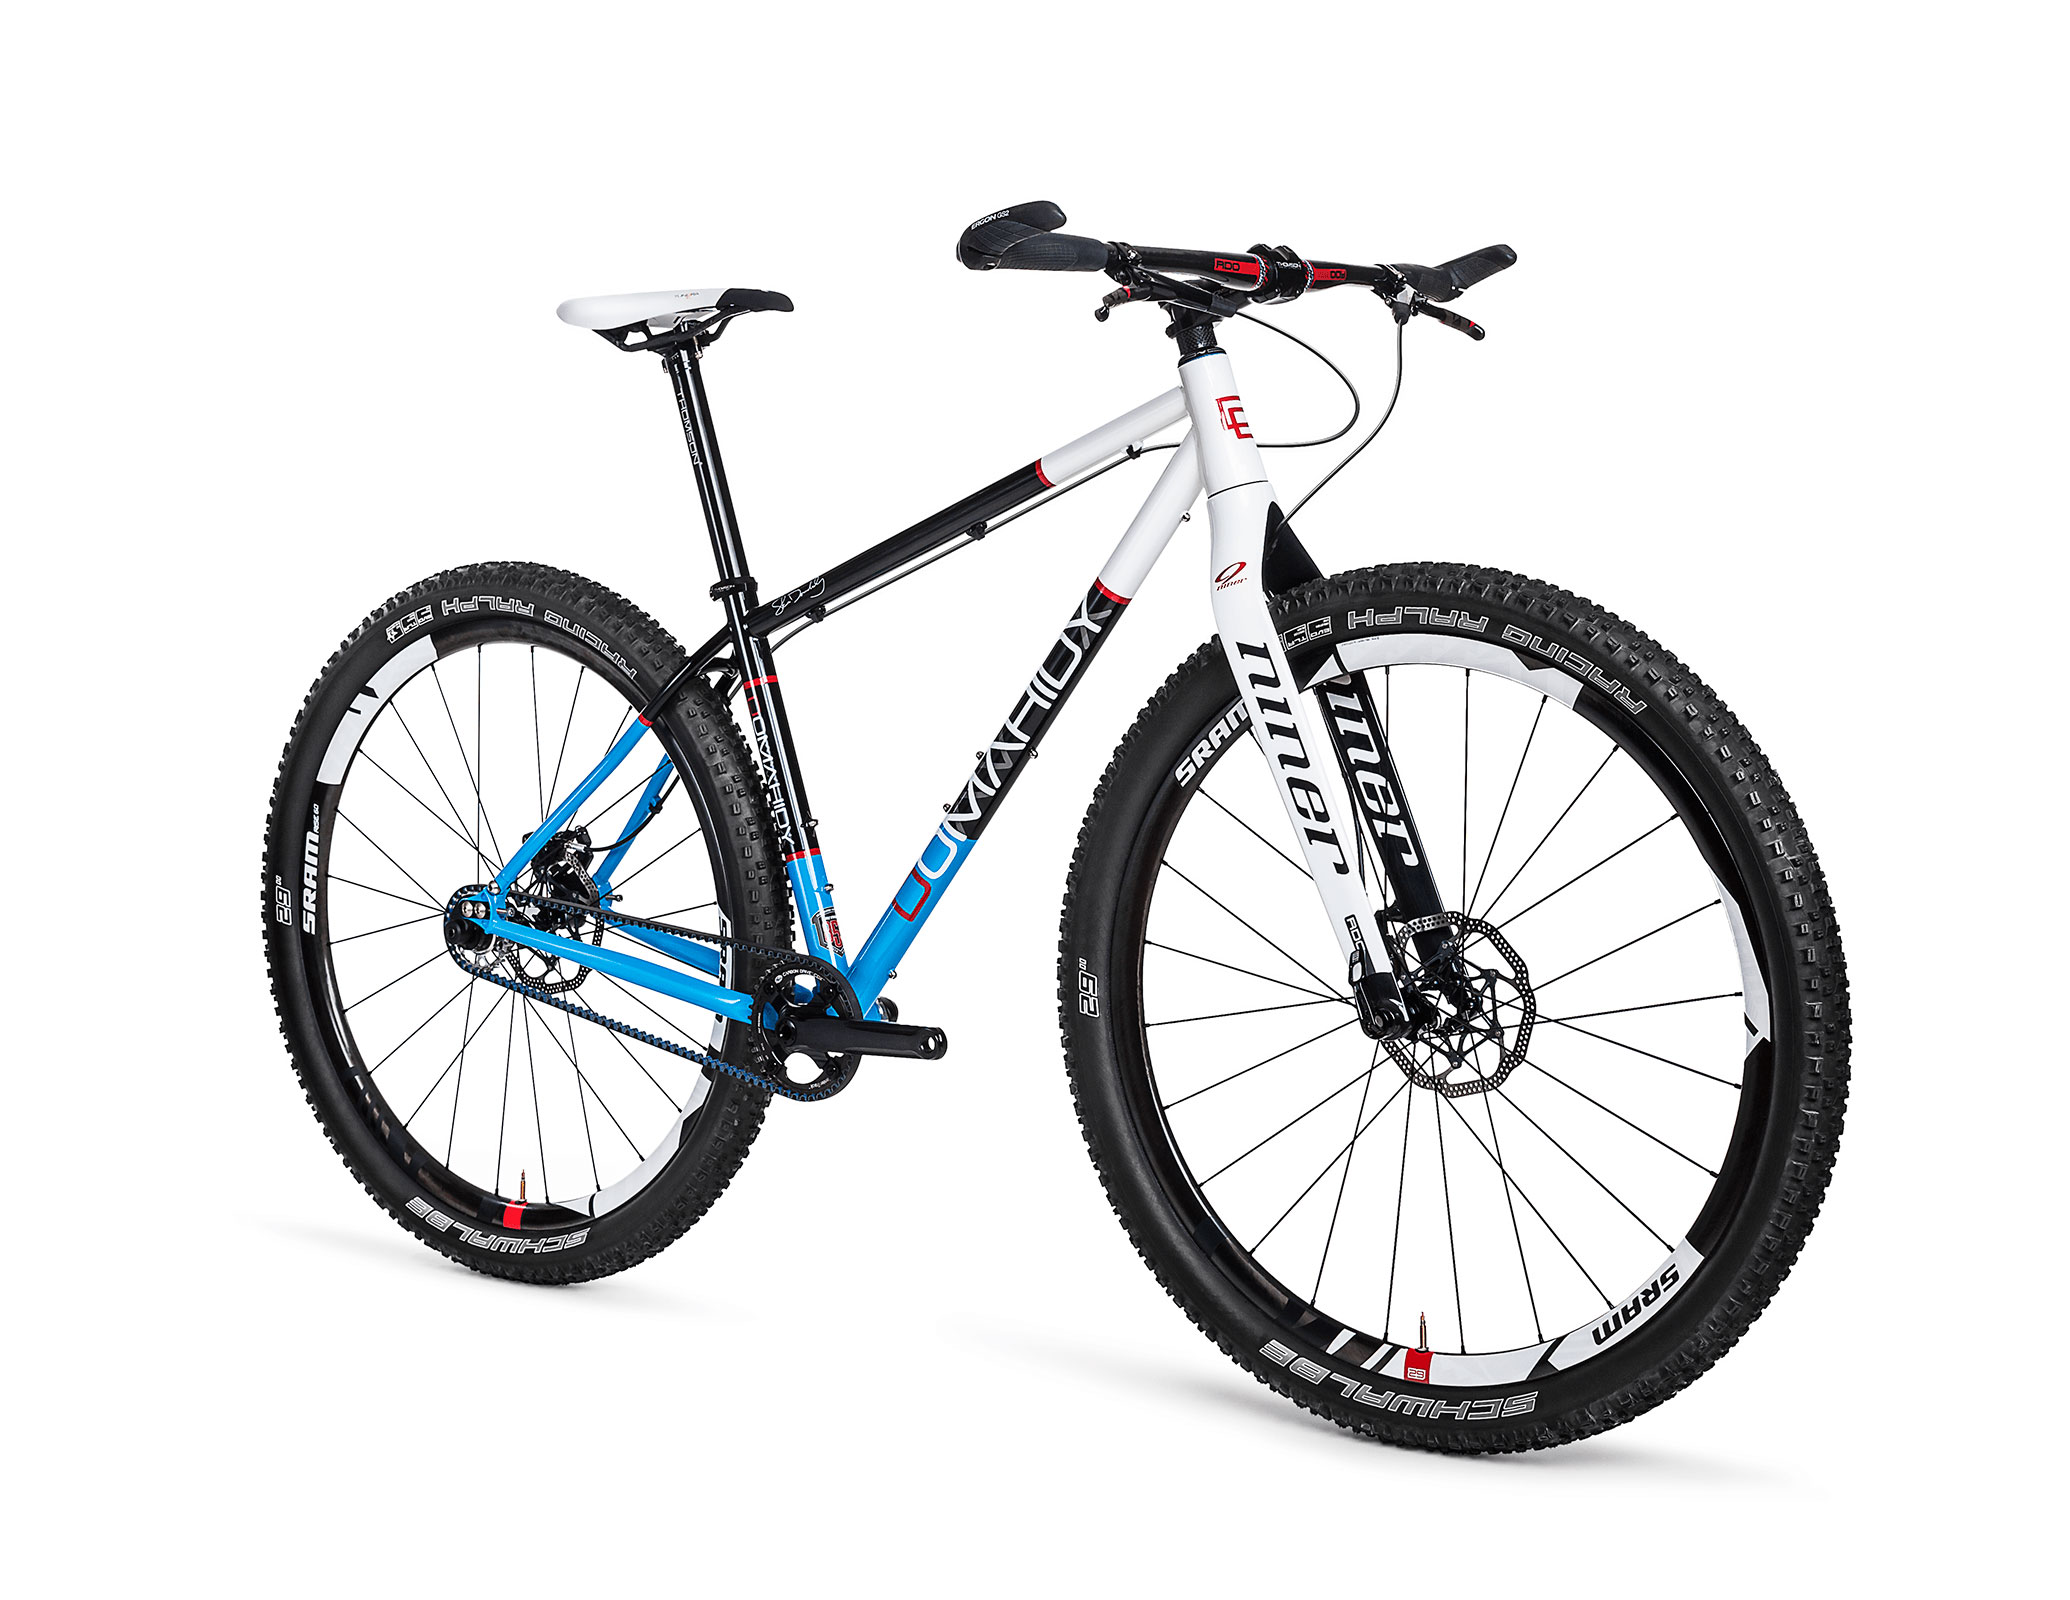 Domahidy 29er three-quarters